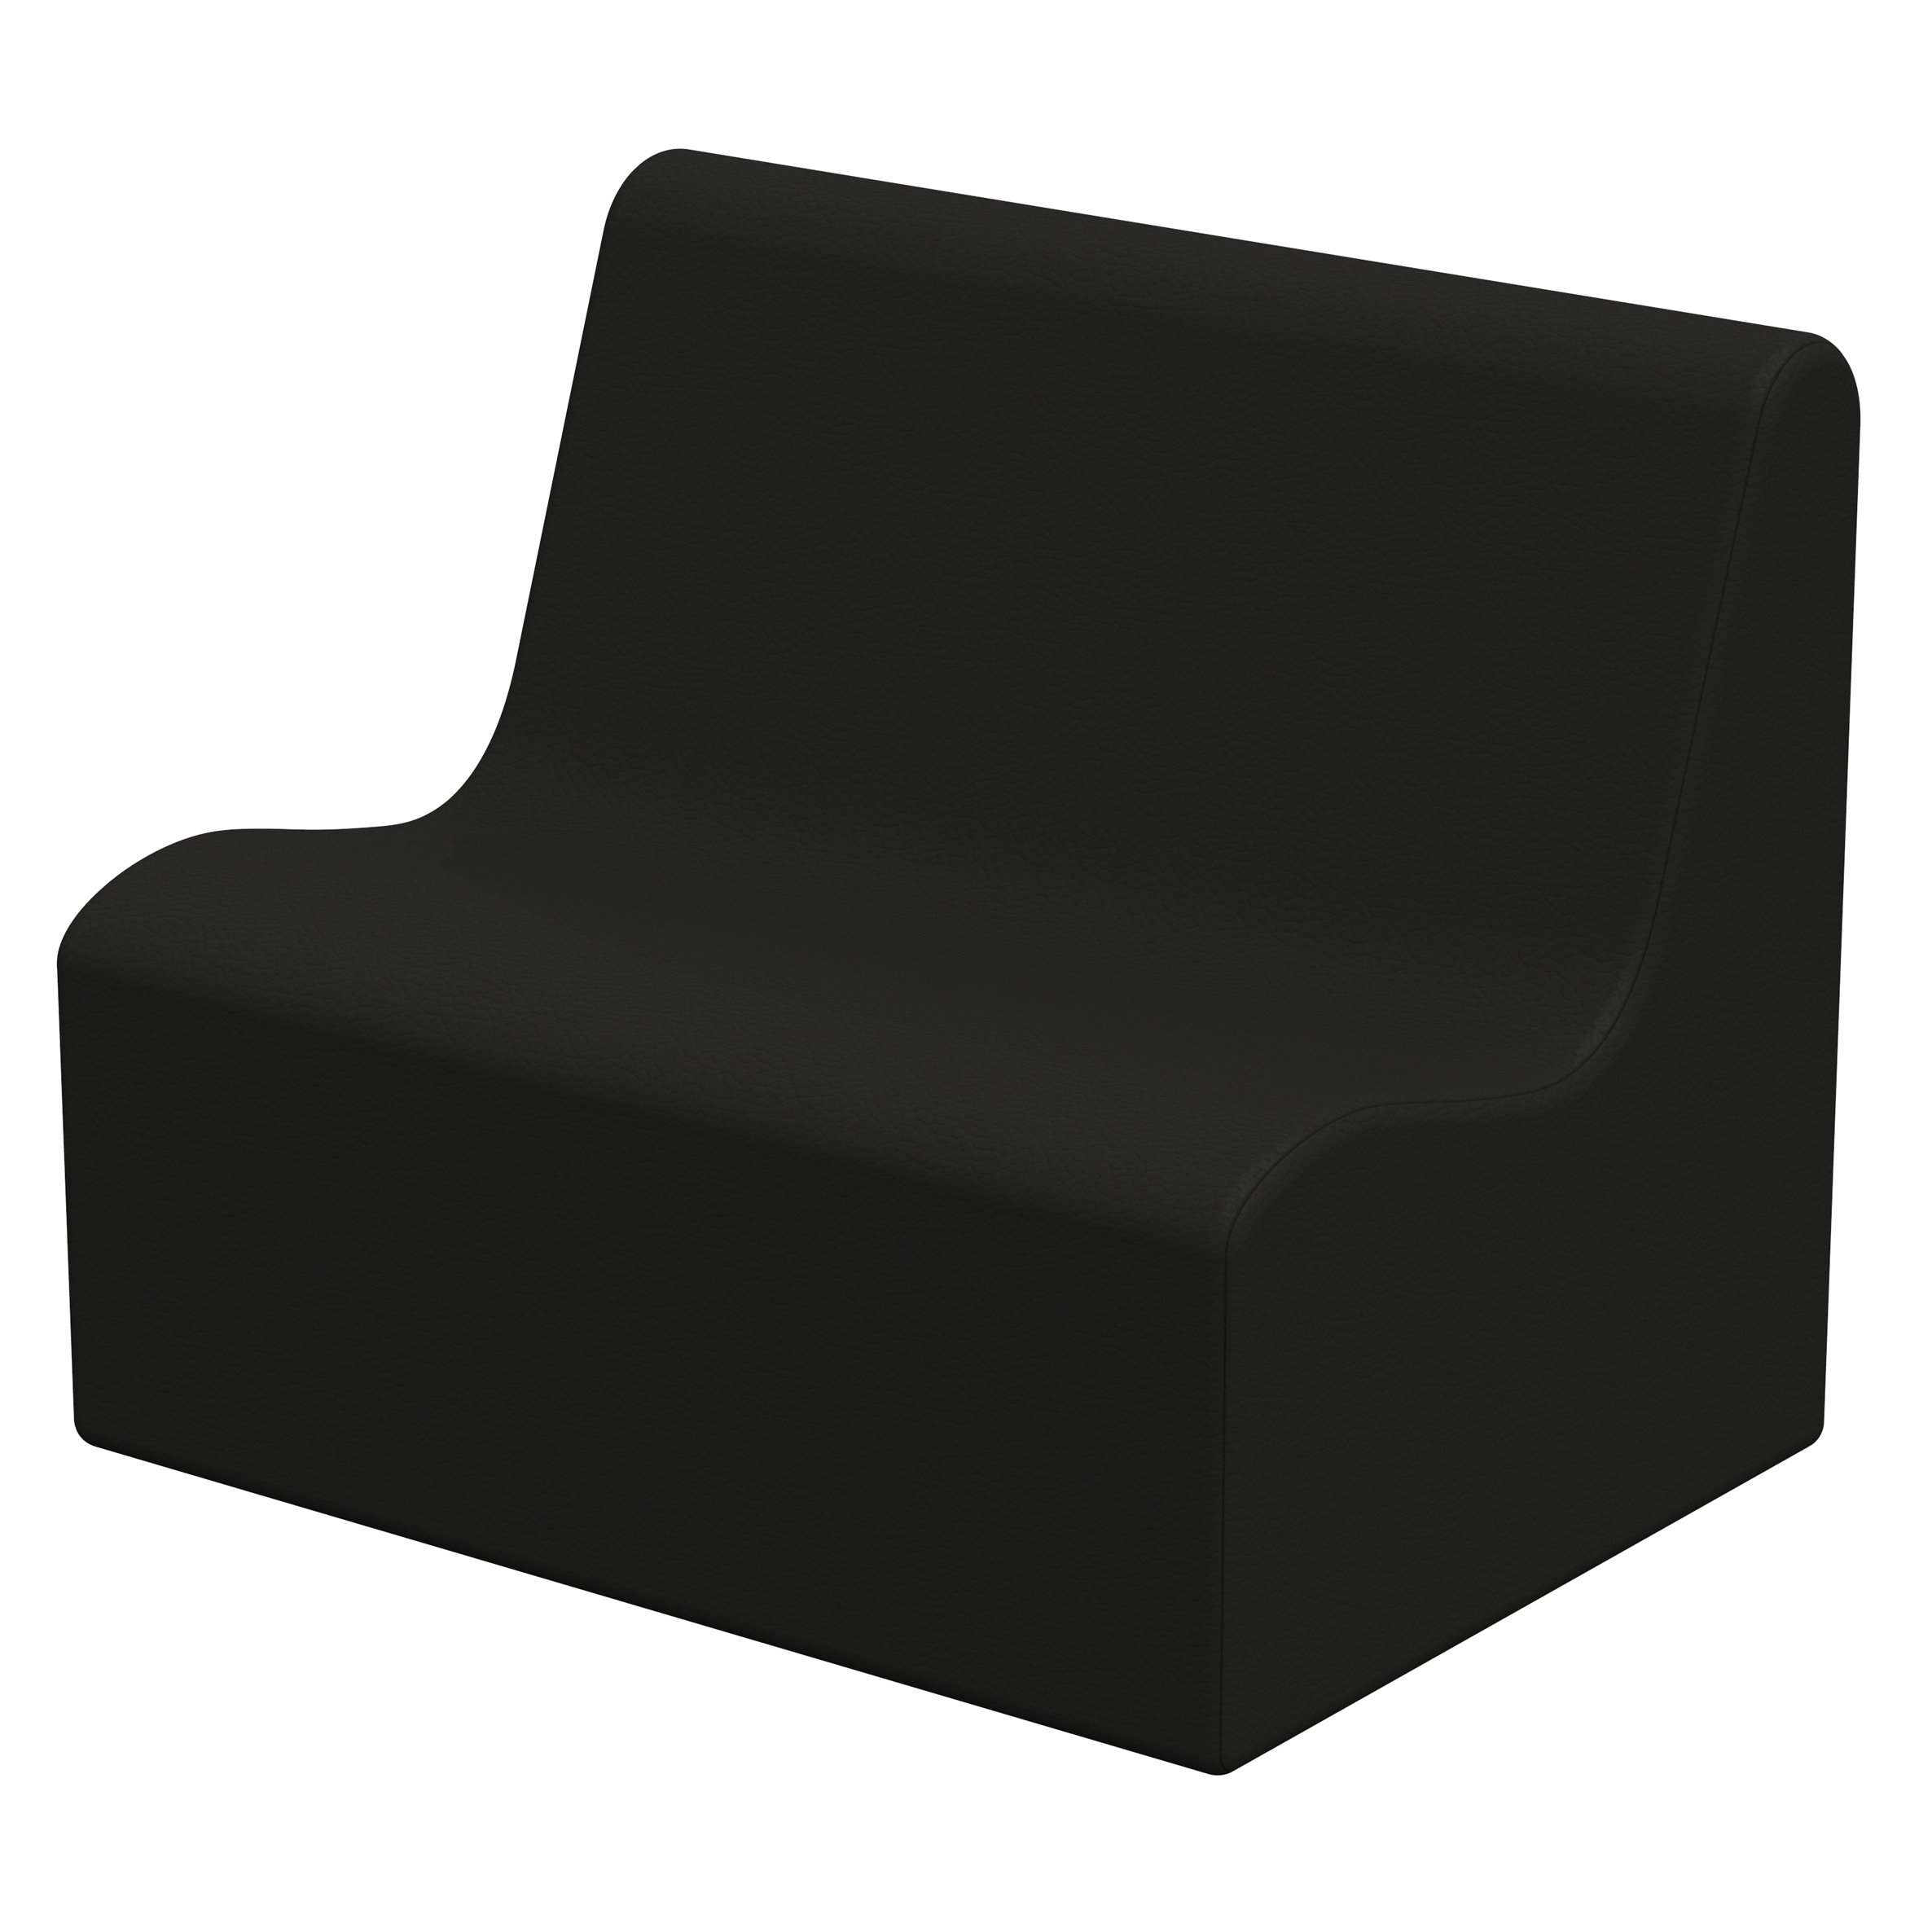 ECR4Kids Softzone Toddler Wave Sofa, Ergonomic Chair for Kids - Black